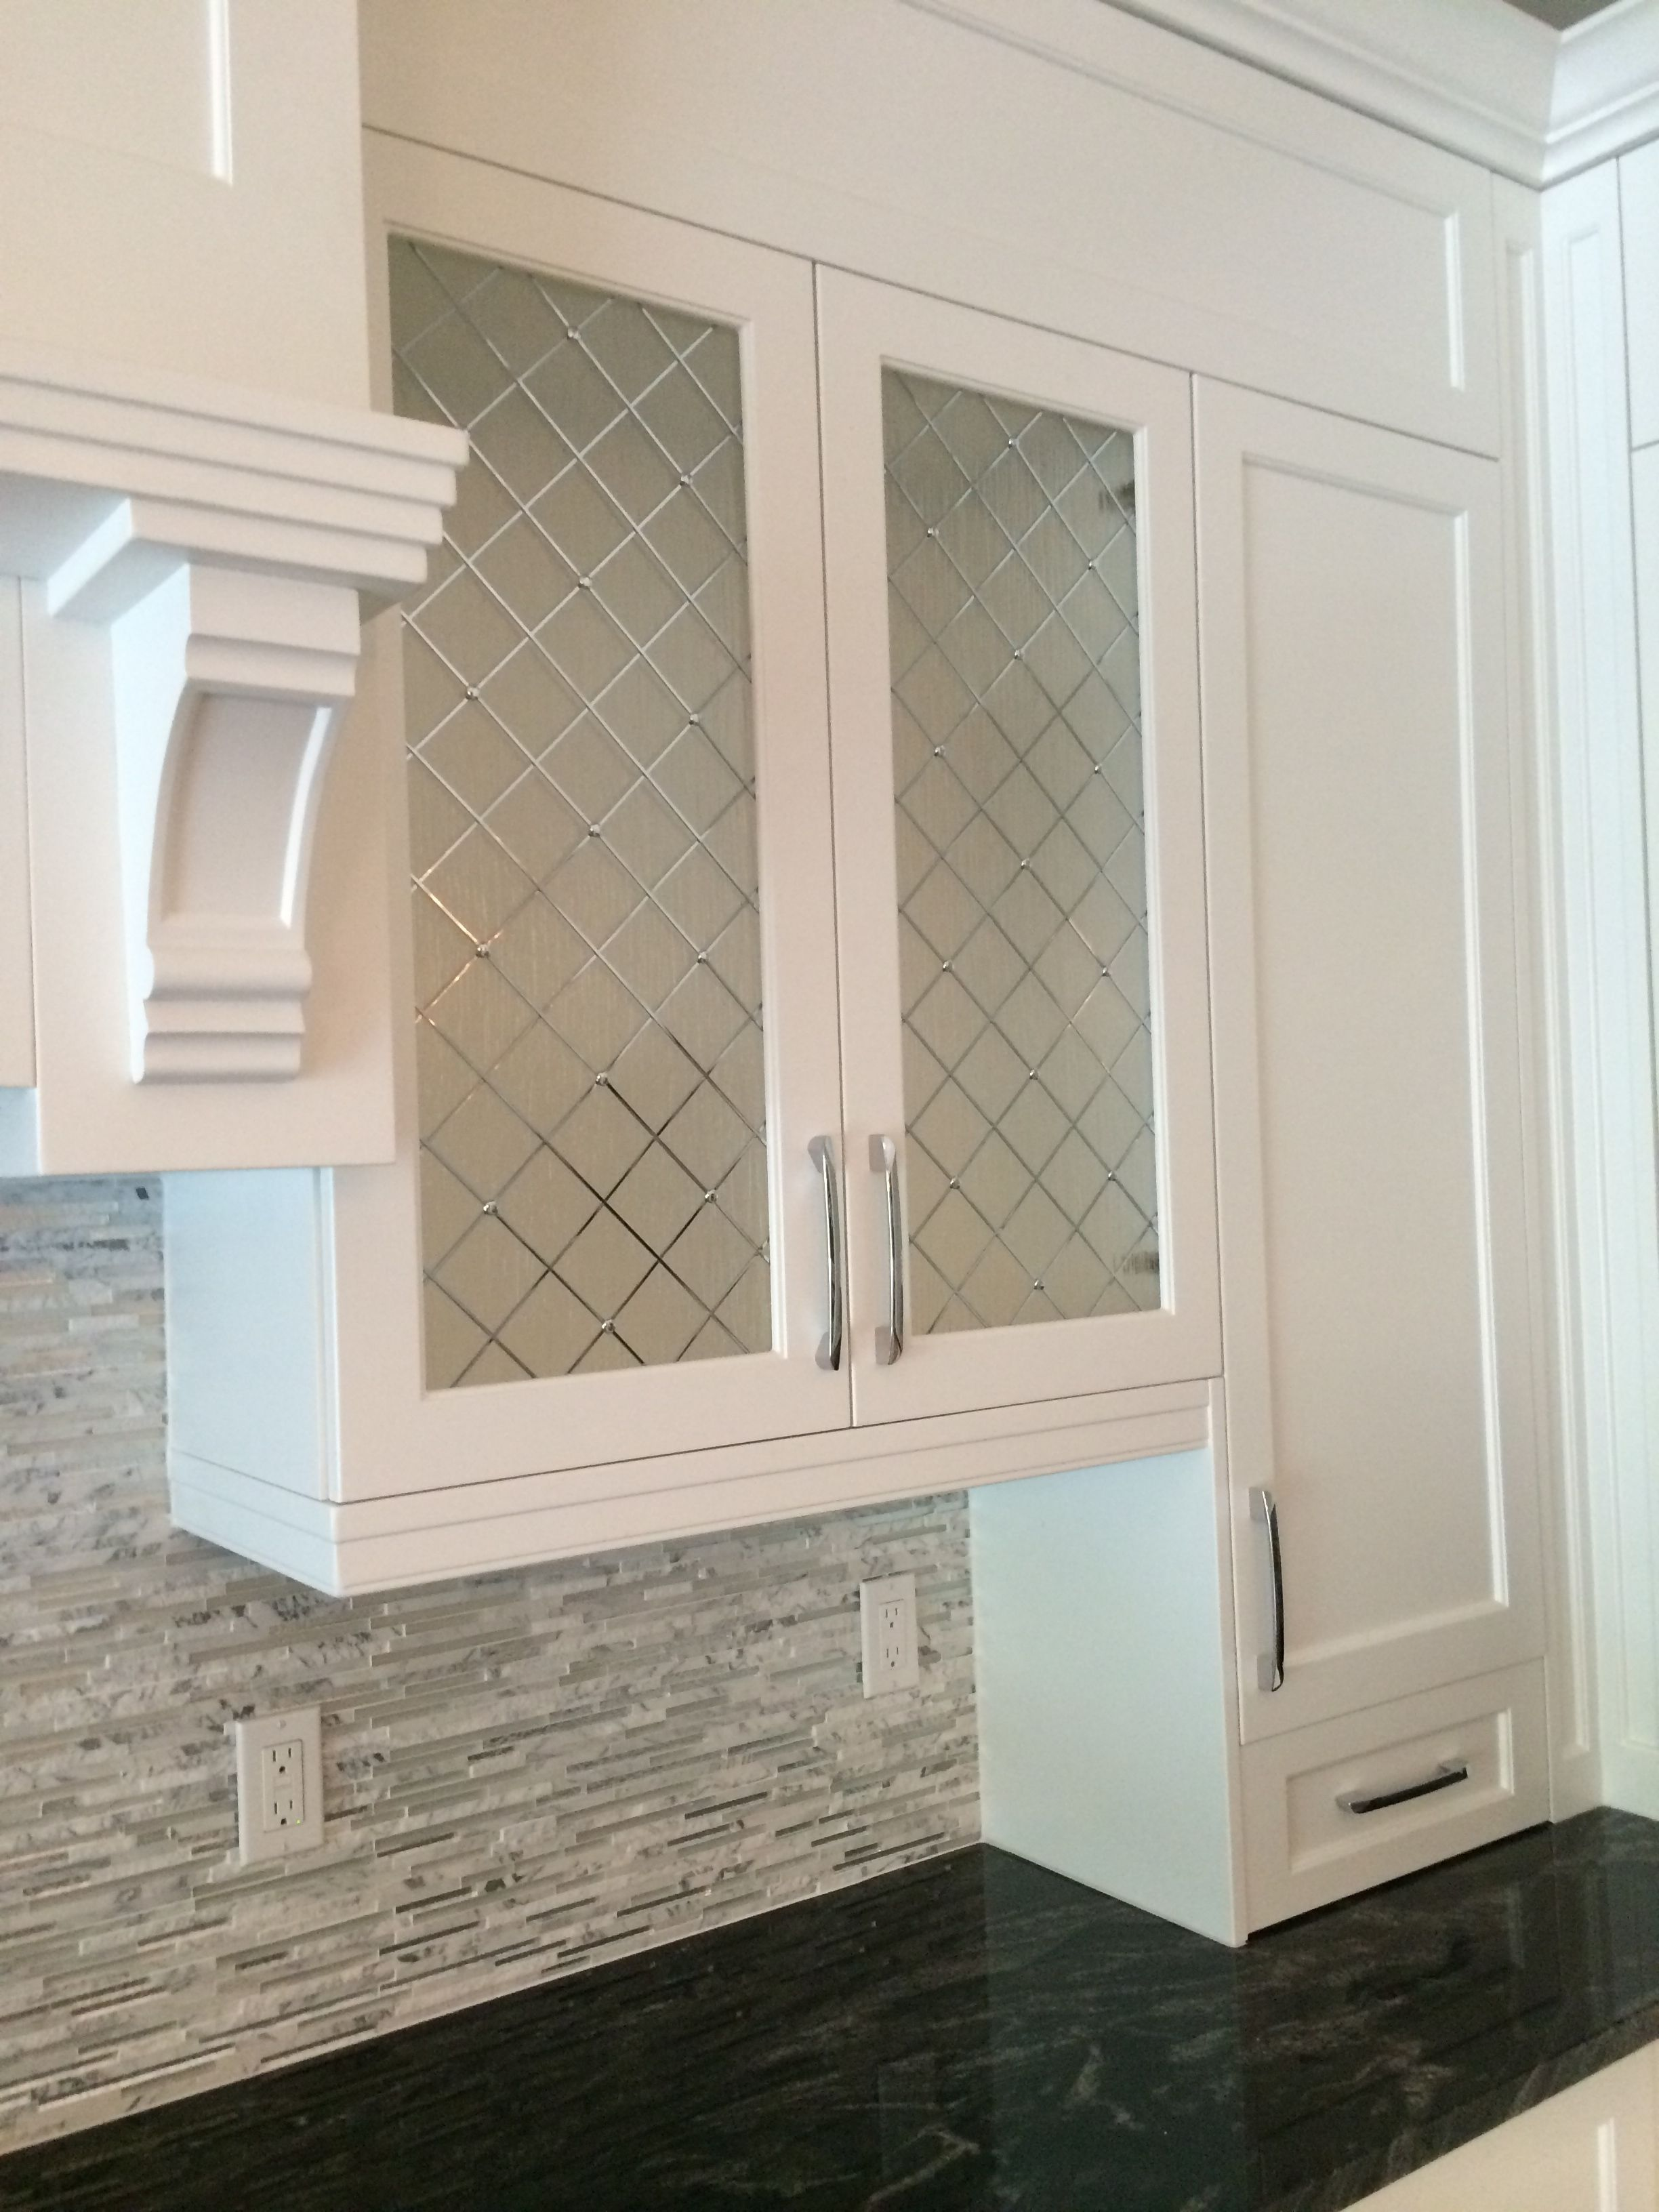 How To Make Kitchen Cabinet Doors With Glass Decorative Cabinet Glass Patterend Glass Glass Kitchen